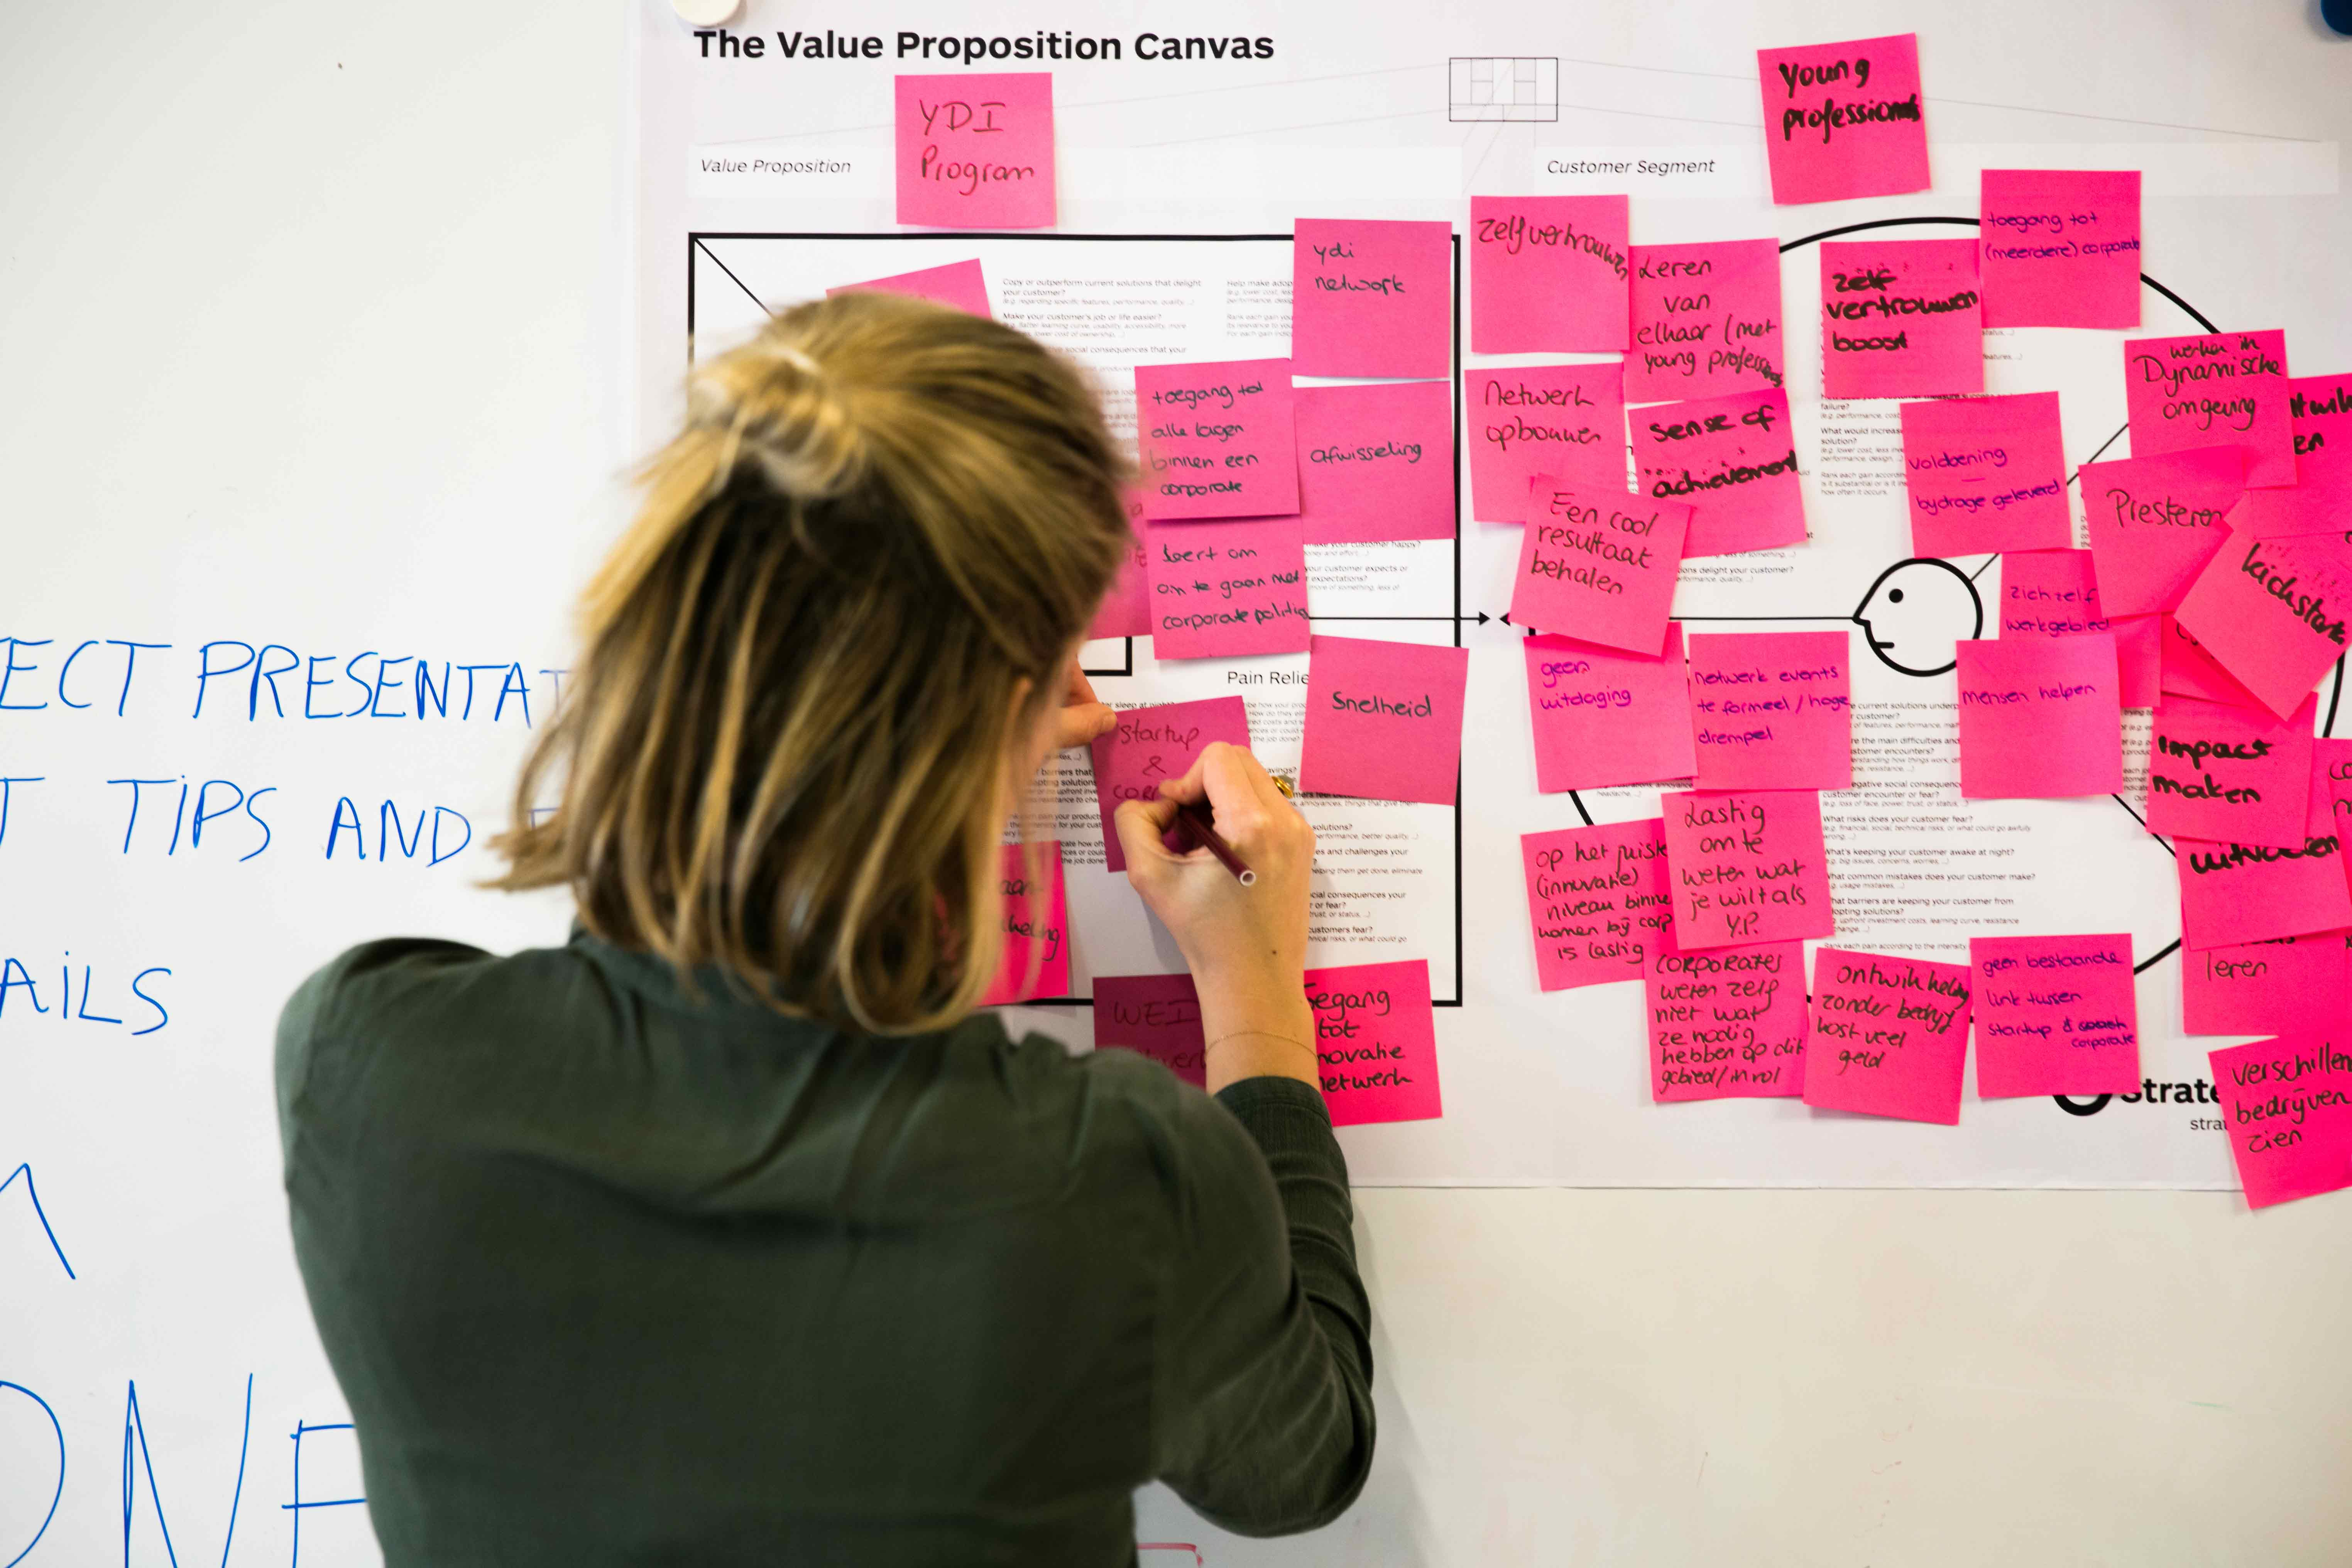 Brainstorm on whiteboard with post-it notes